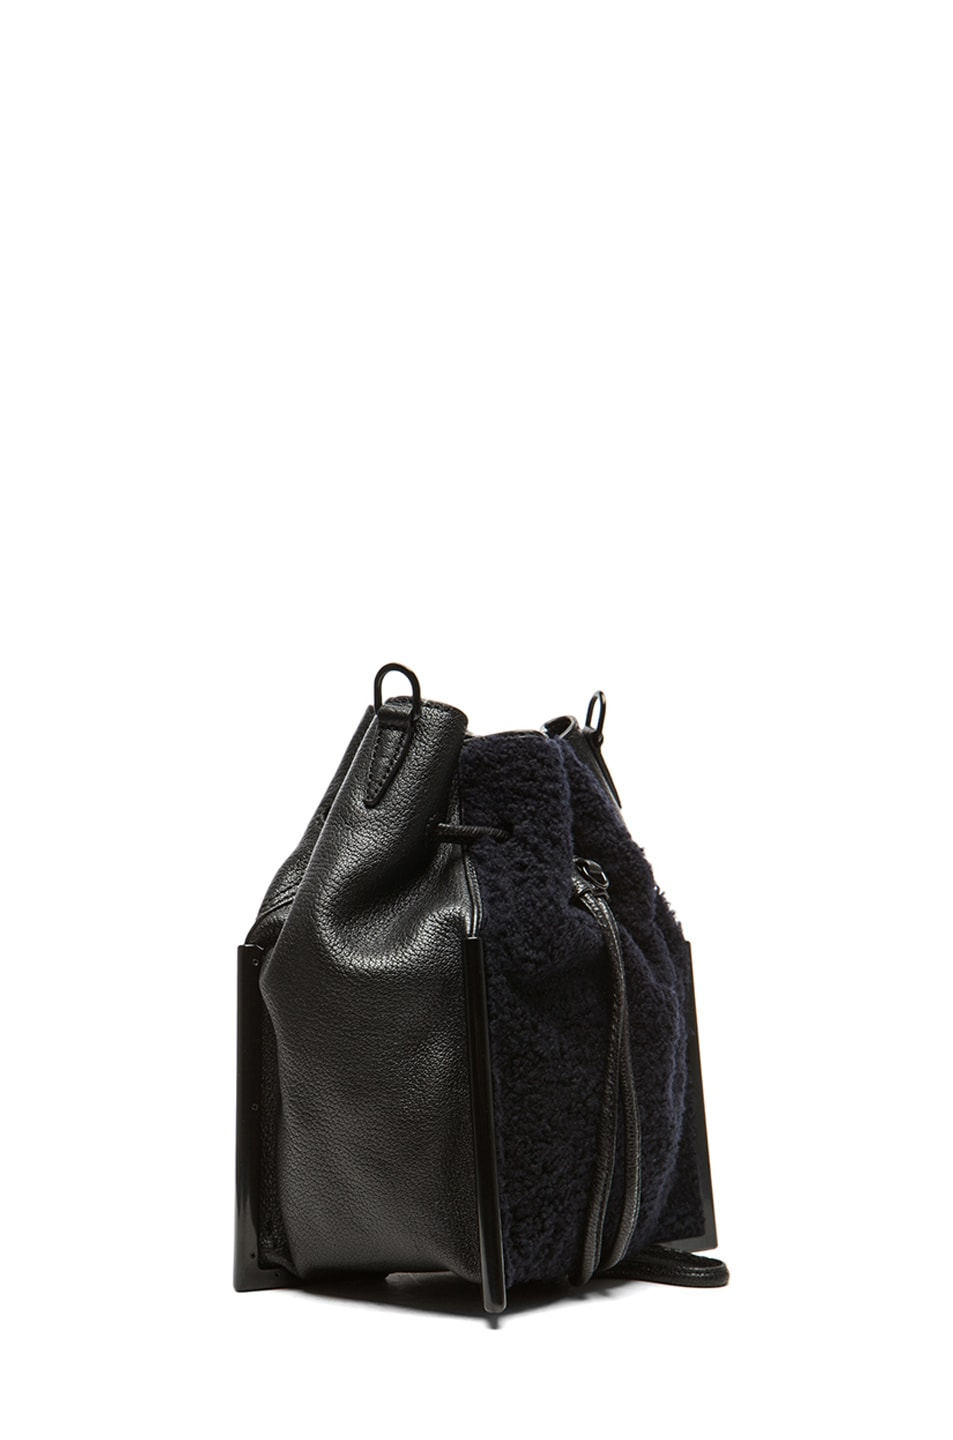 Image 3 of 3.1 phillip lim Small Scout Crossbody in Midnight & Black